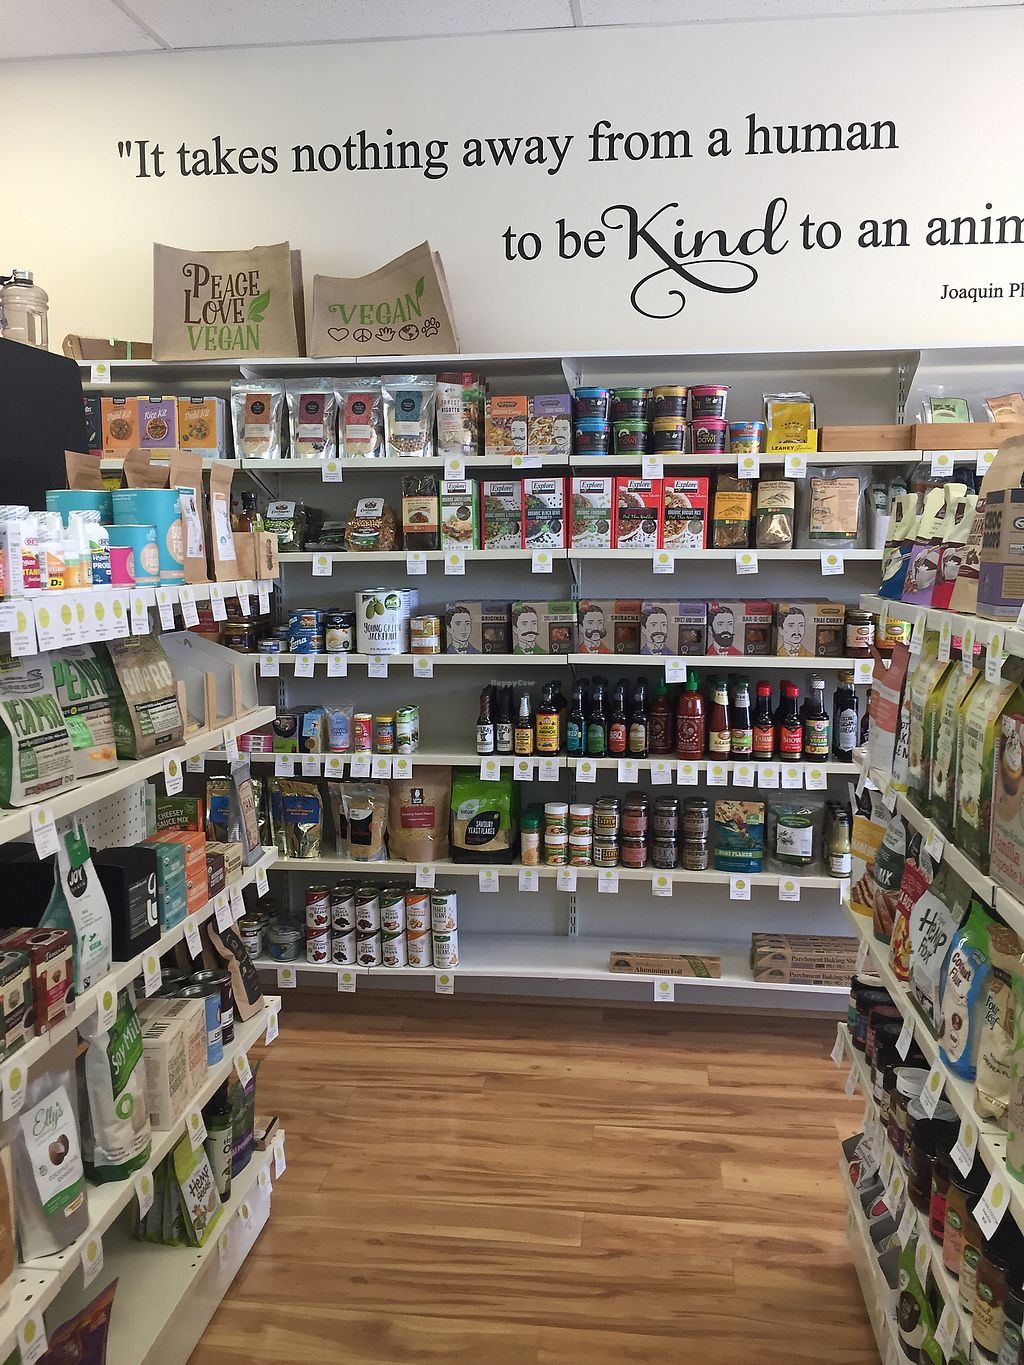 """Photo of La Vida Vegan Grocery  by <a href=""""/members/profile/ExpatAnnie"""">ExpatAnnie</a> <br/>More products <br/> February 1, 2018  - <a href='/contact/abuse/image/66342/353425'>Report</a>"""